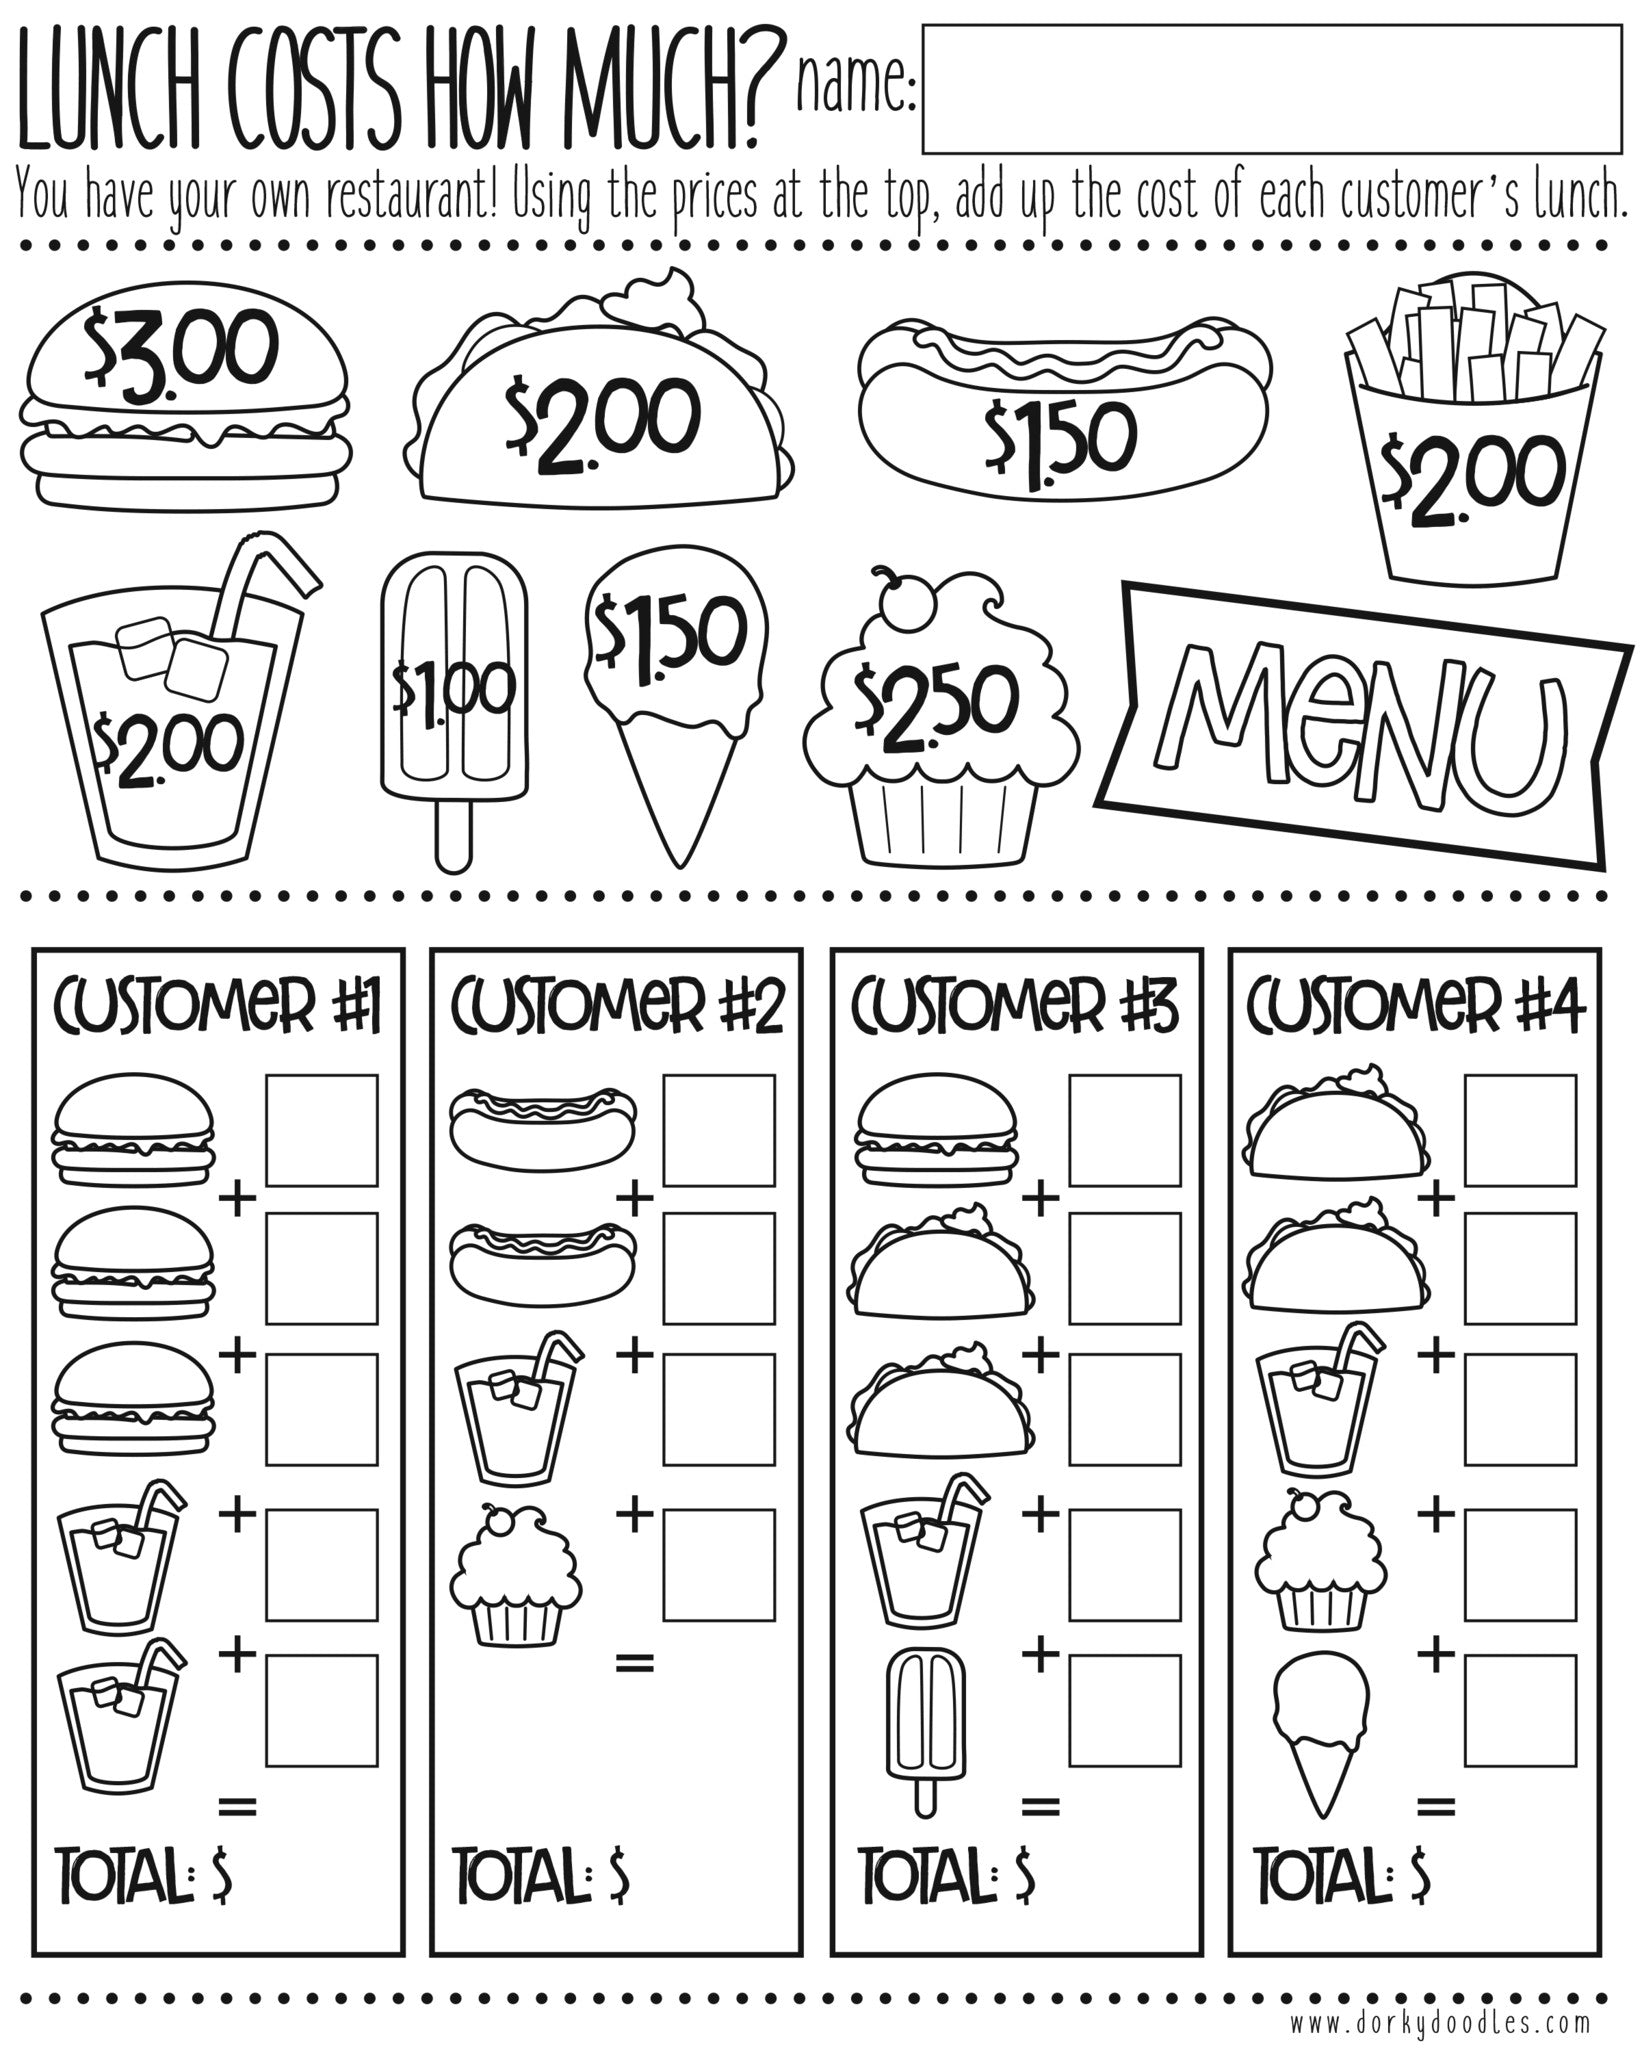 money math practice how much does lunch cost dorky doodles. Black Bedroom Furniture Sets. Home Design Ideas